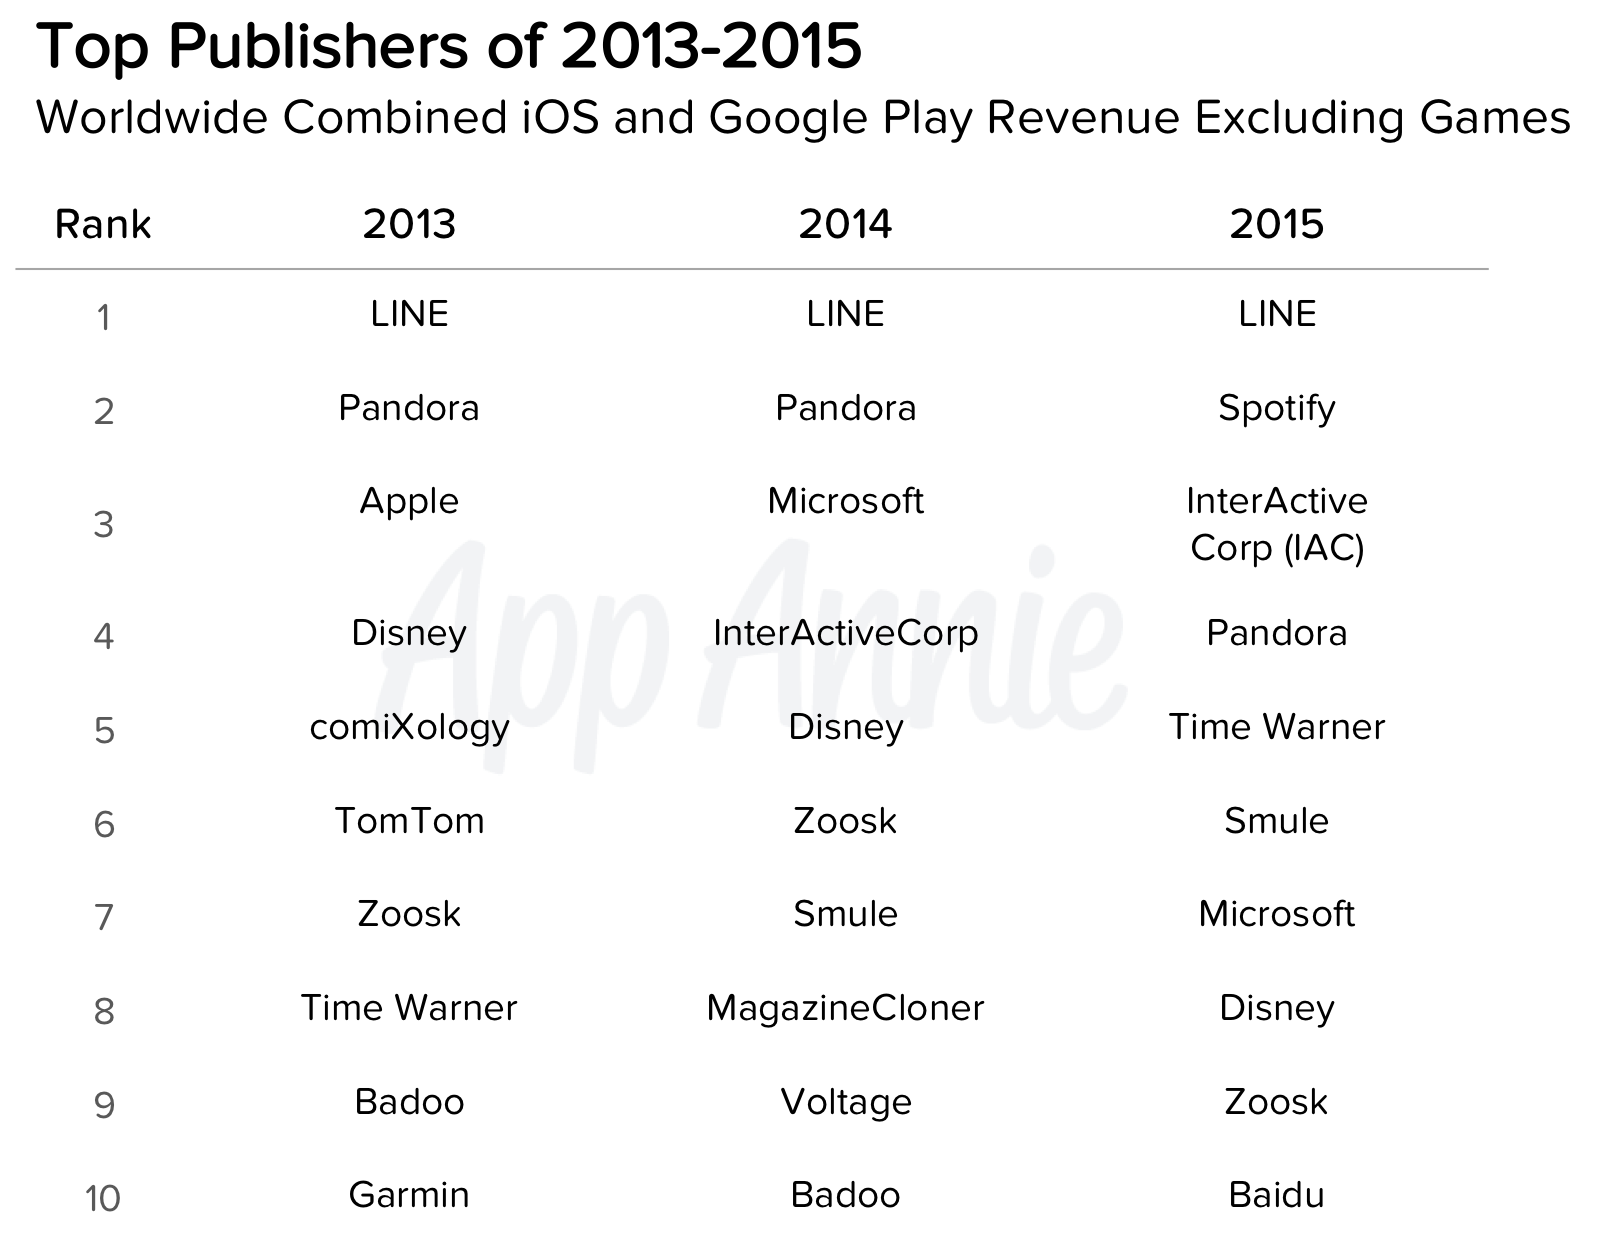 Top Publishers 2013-2015